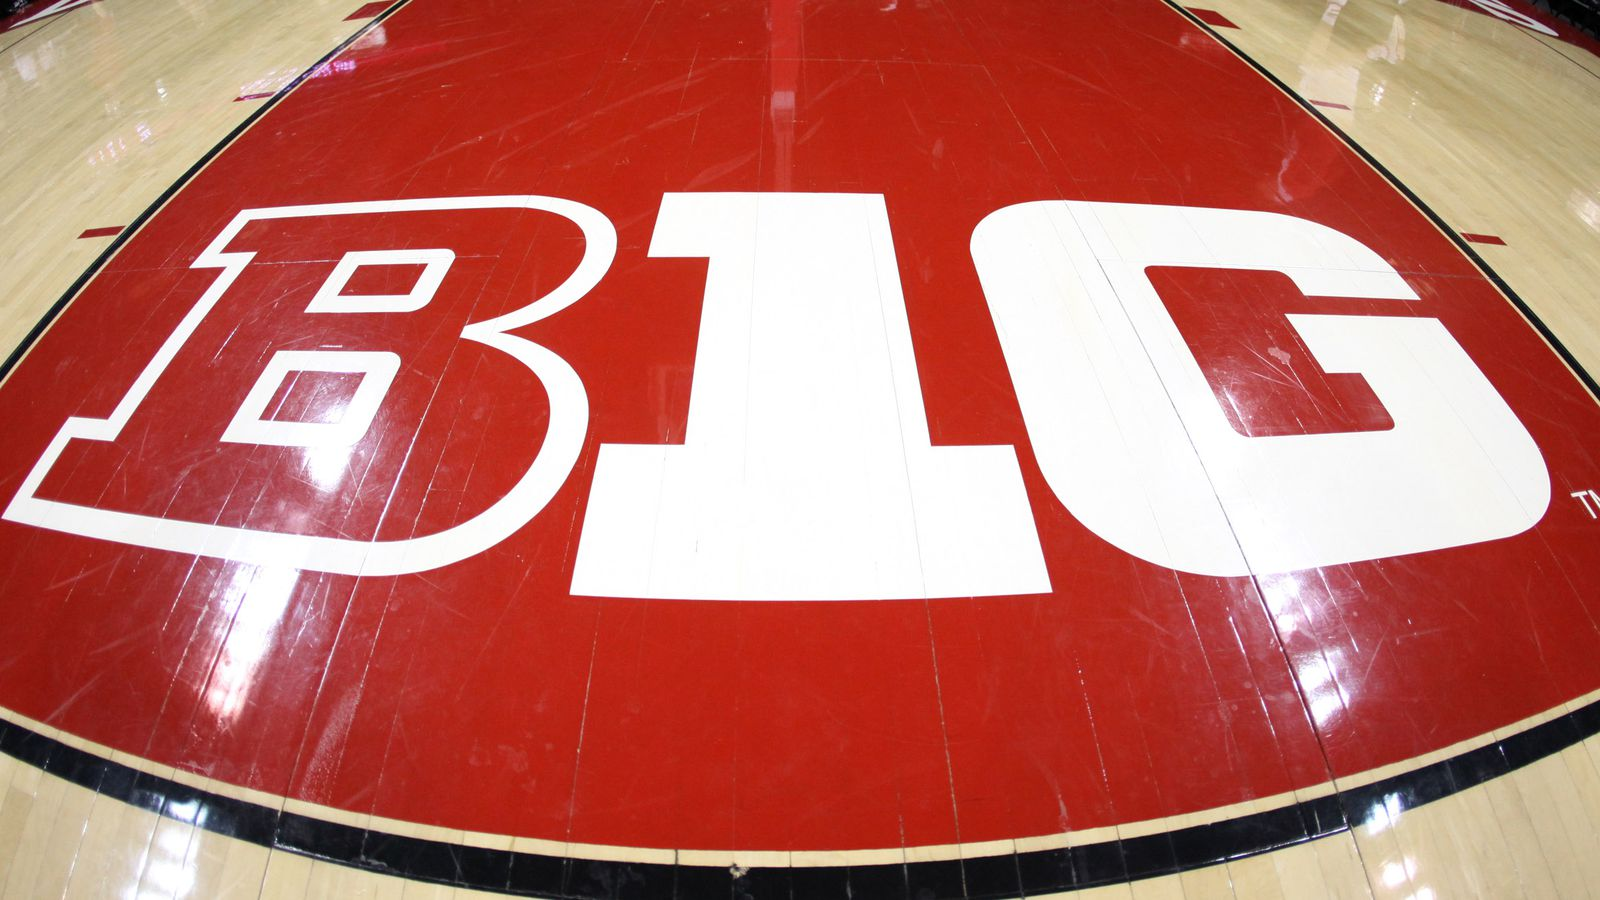 Maryland did well in first B1G campaign